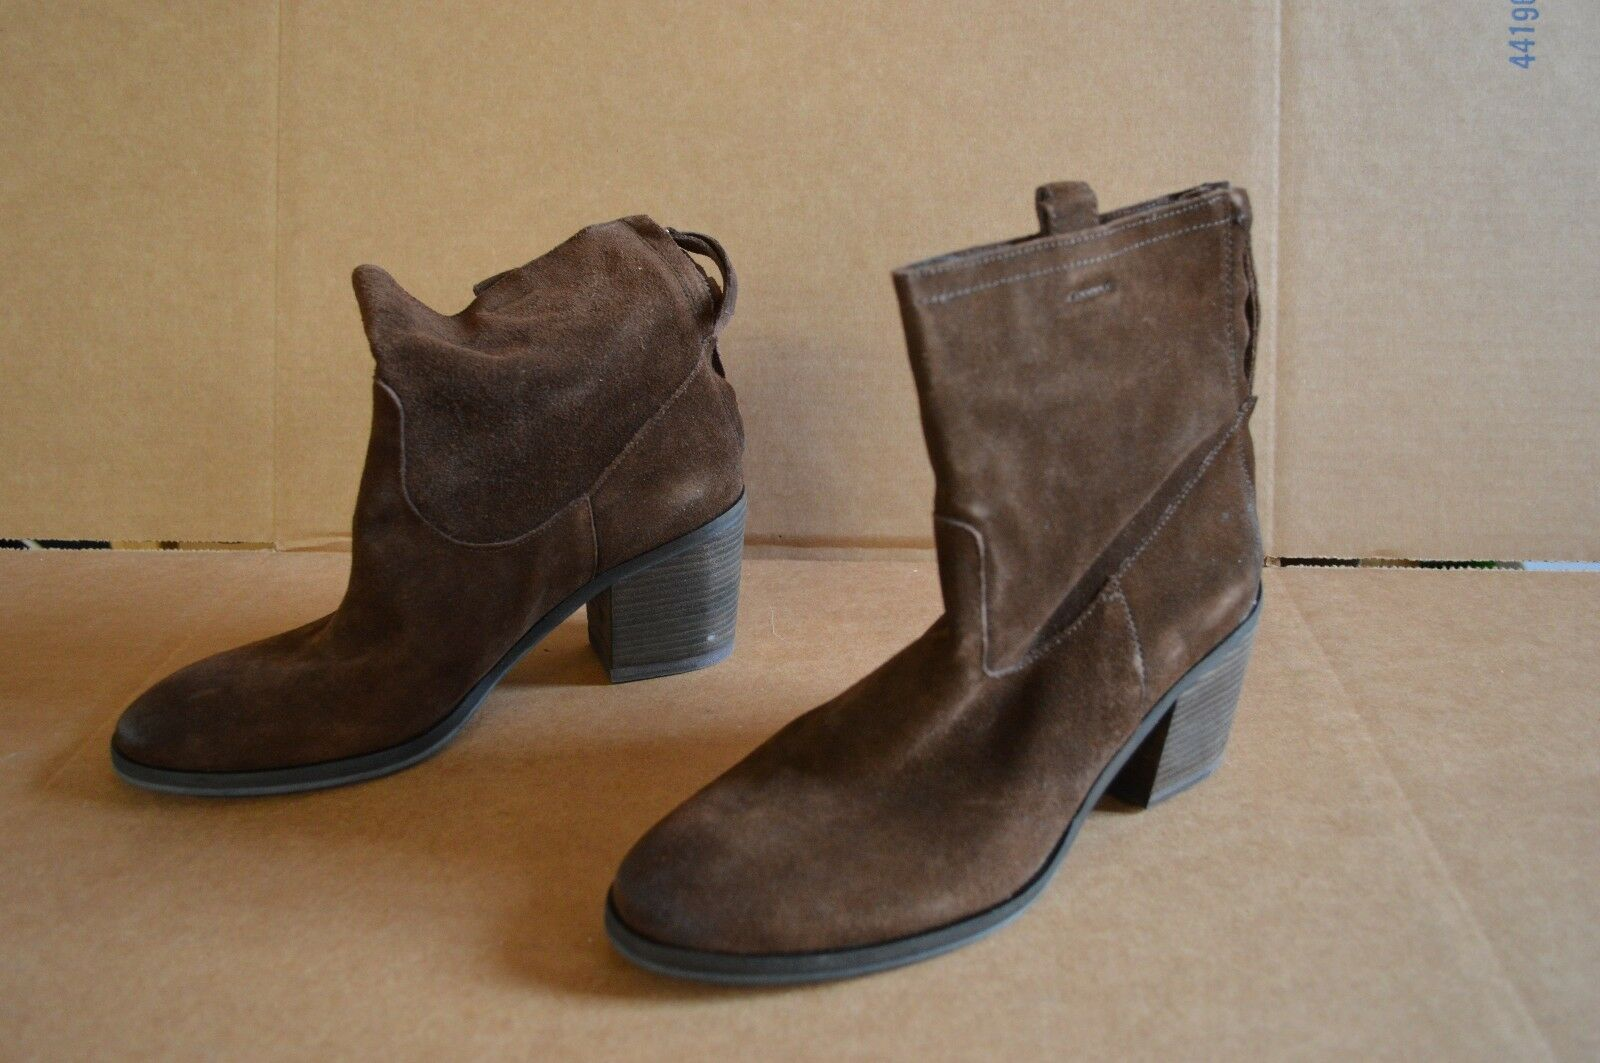 Sam Edelman Women's S-Farrell Brown Suede Ankle Boots 10 M Pre-Owned